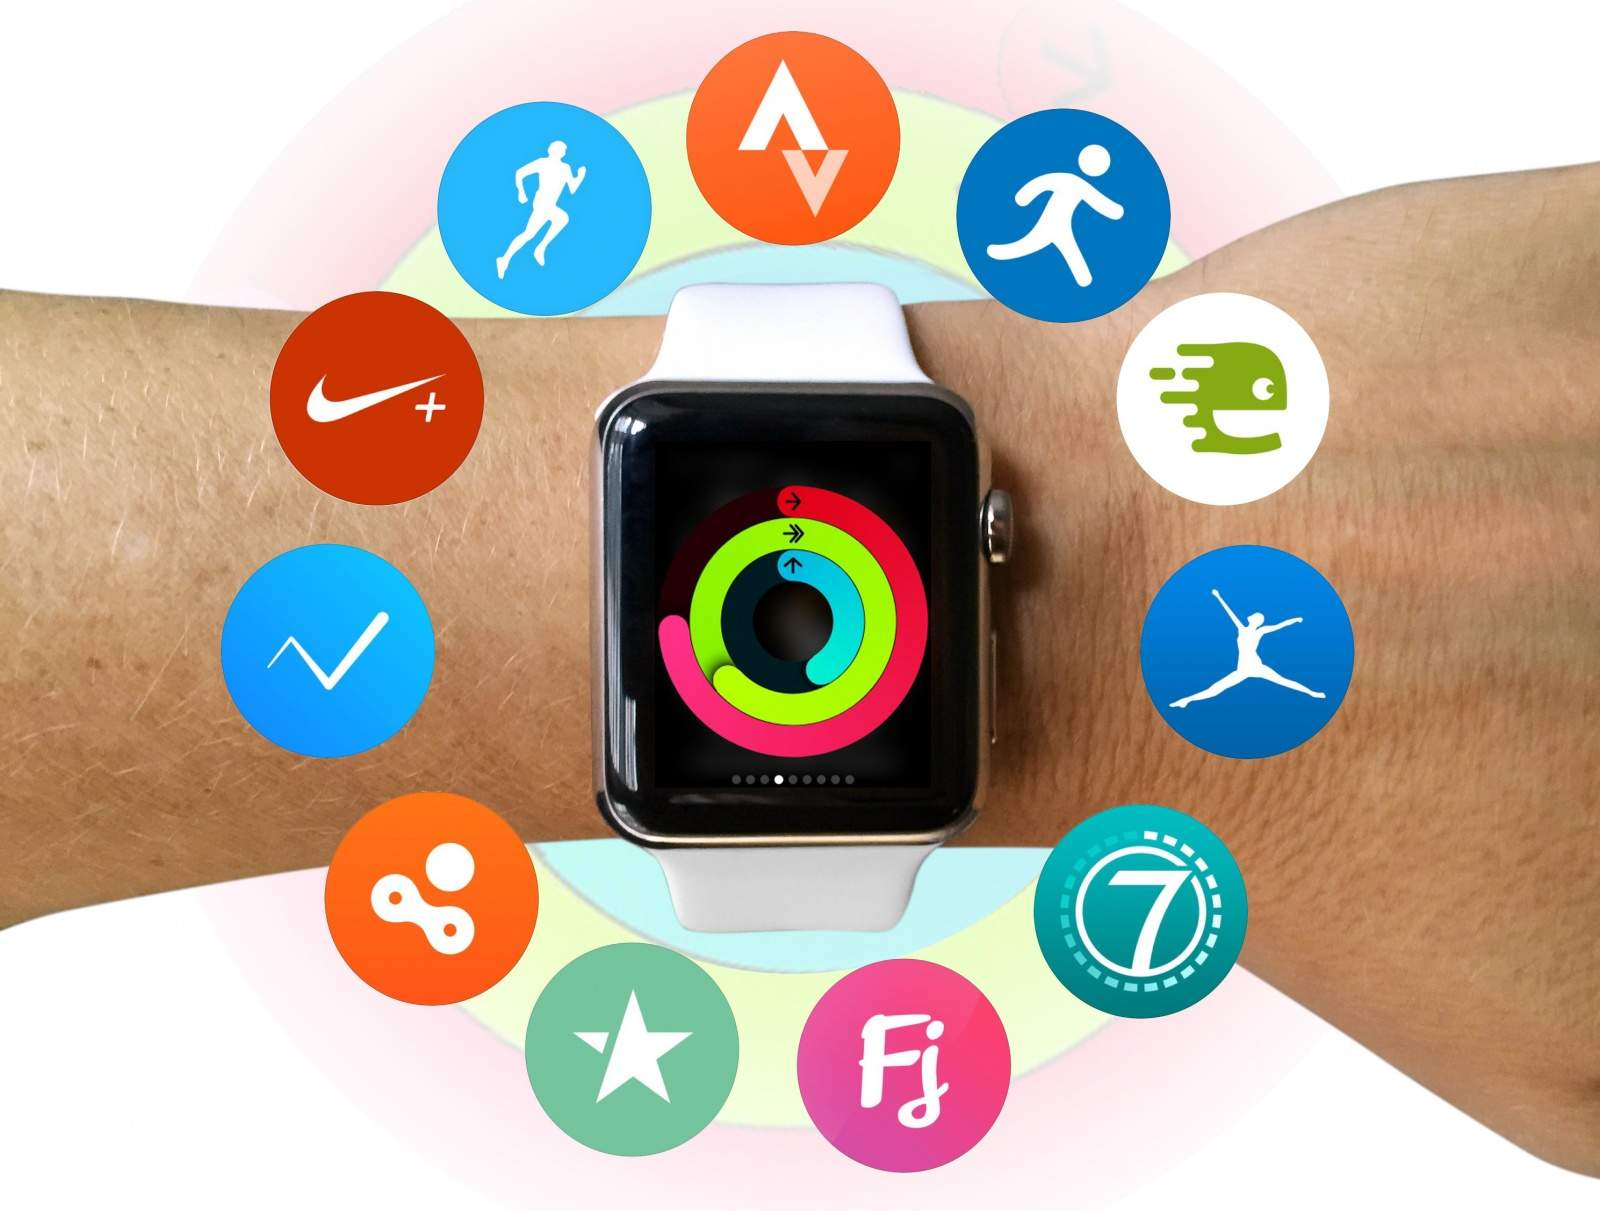 The Activity app forms the hub of Apple's fitness platform strategy.